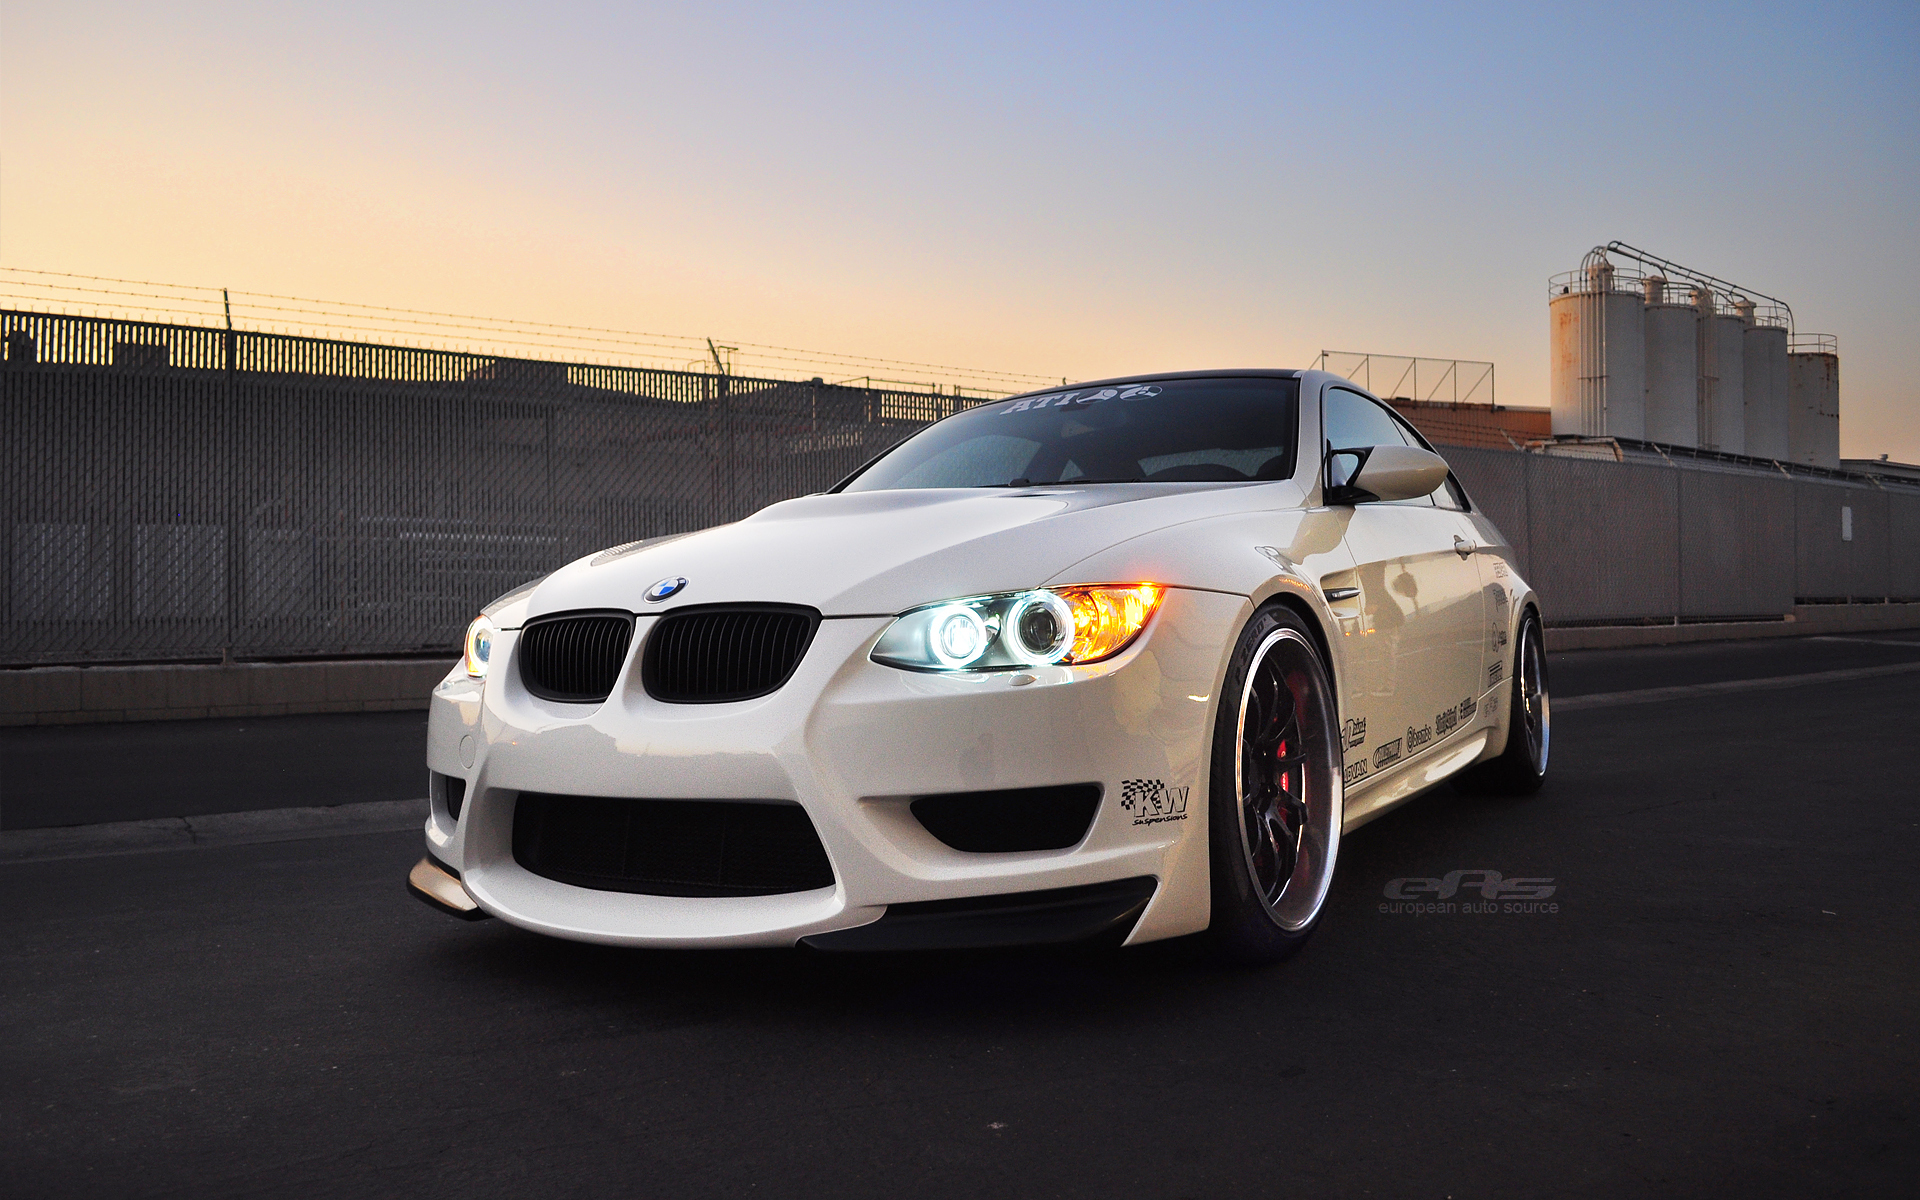 download wallpaper bmw cars - photo #18